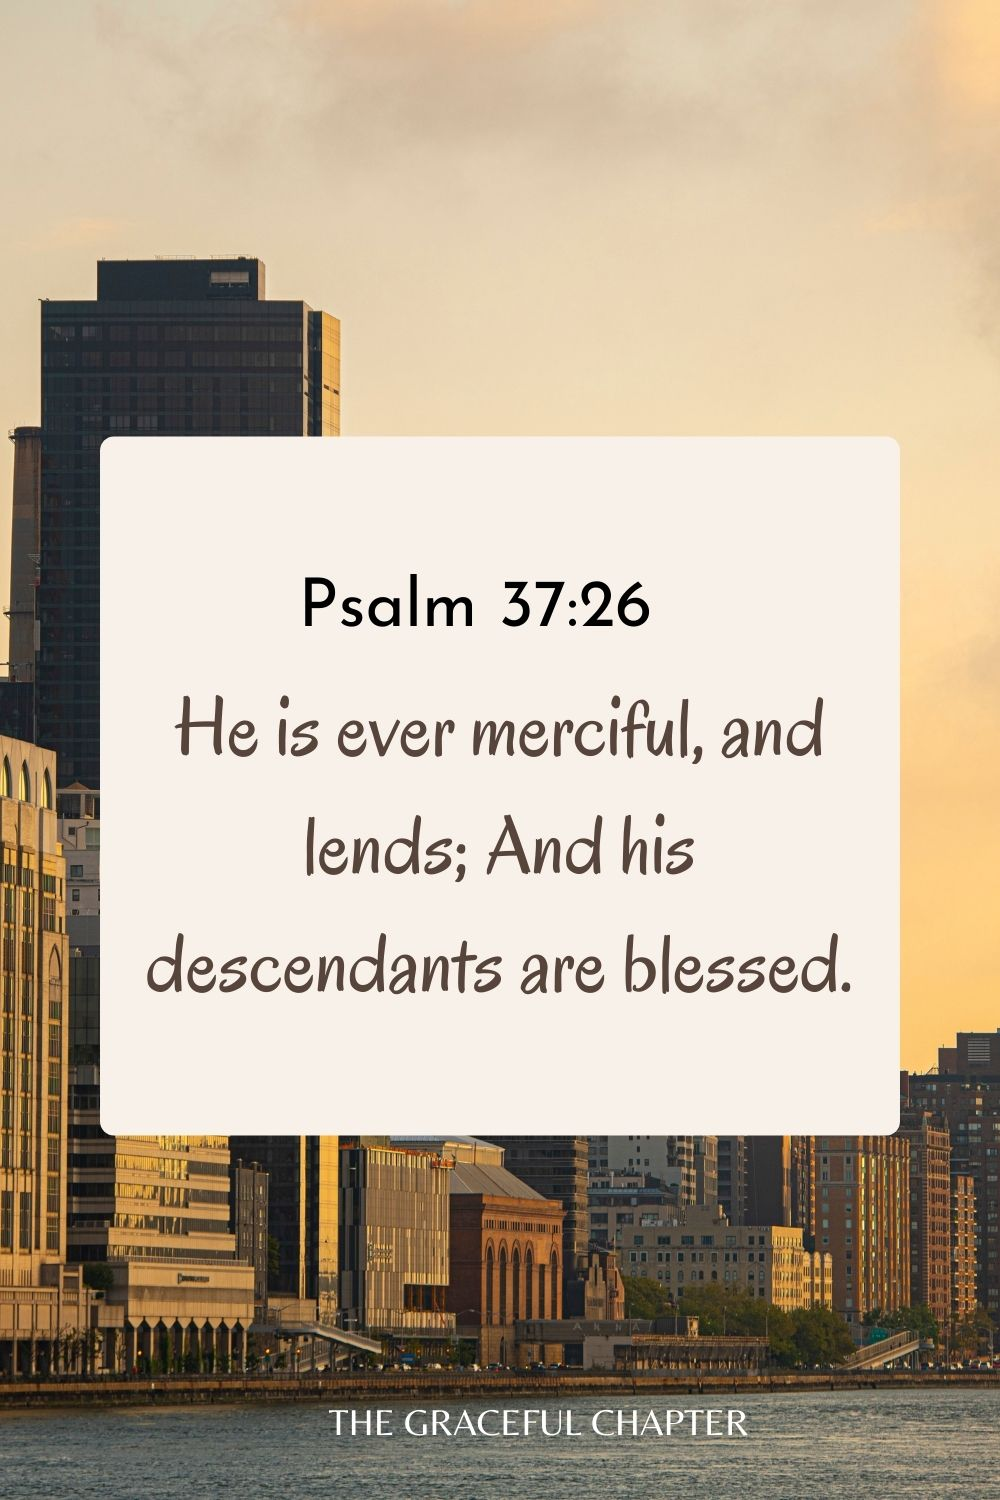 He is ever merciful, and lends; And his descendants are blessed. Psalm 37:26